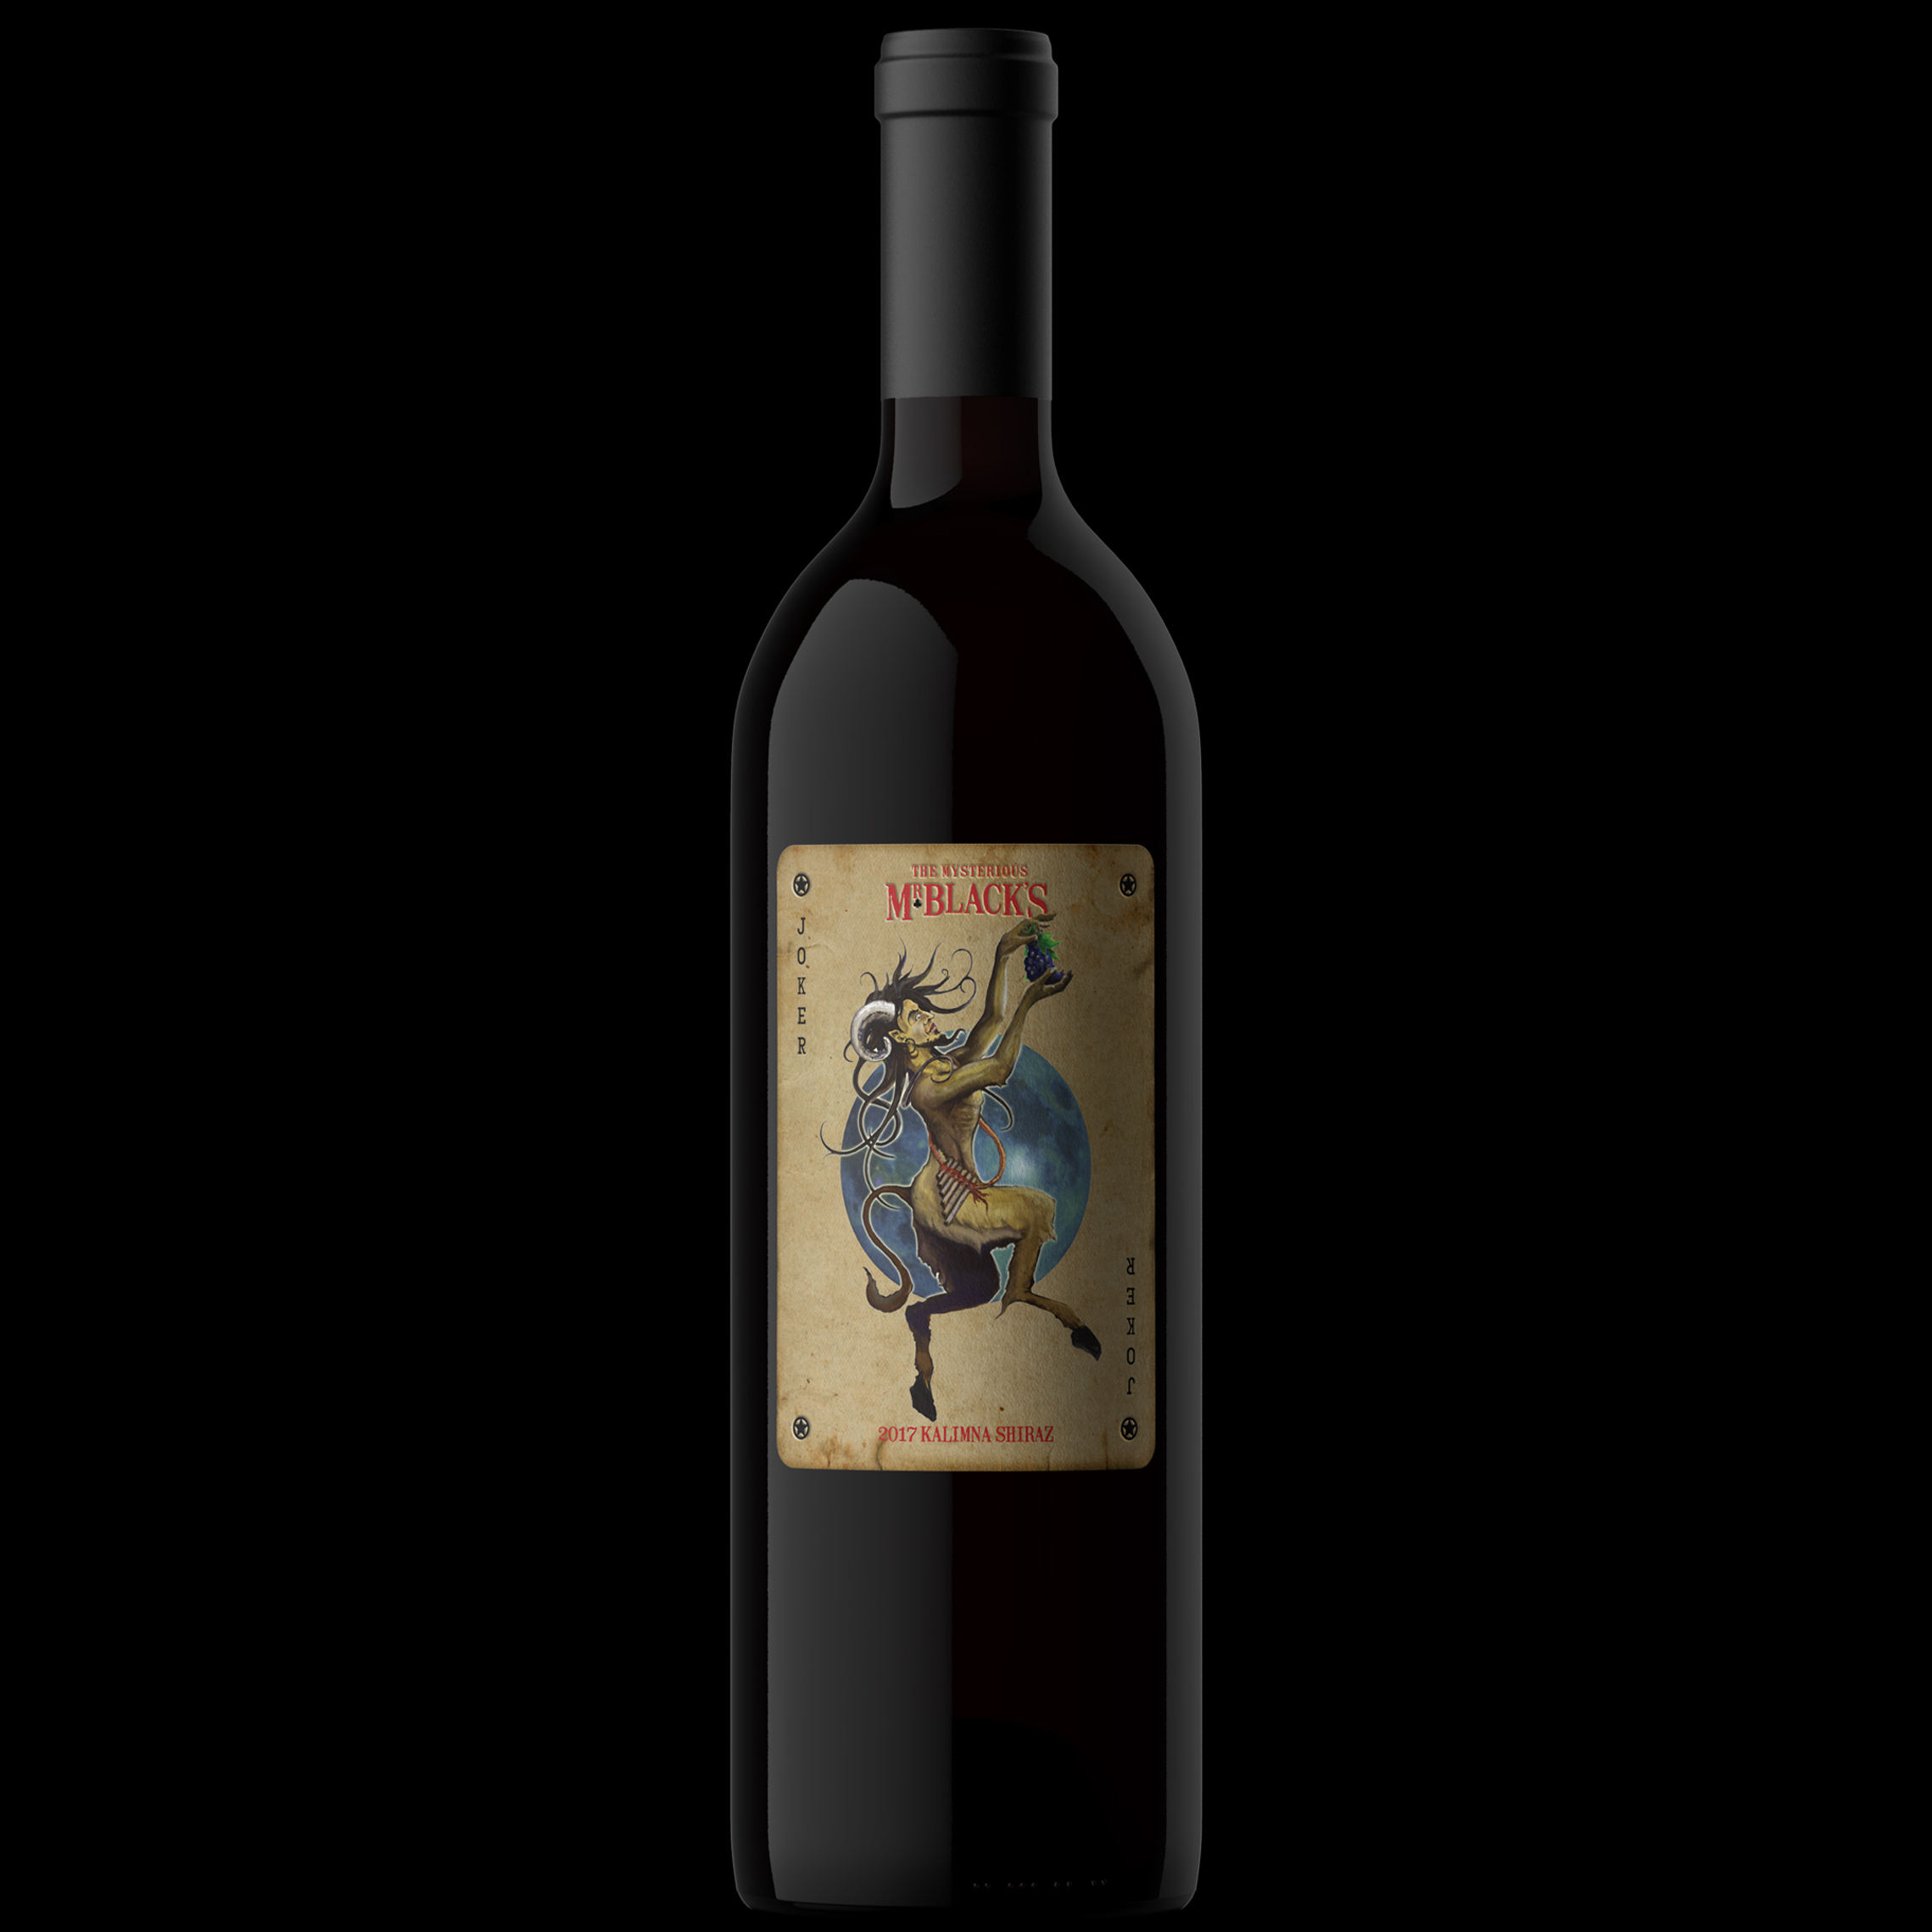 S-2017-The-Joker-Kalimna-Shiraz-Mysterious-Mr-Blacks-Wine-Australia-01